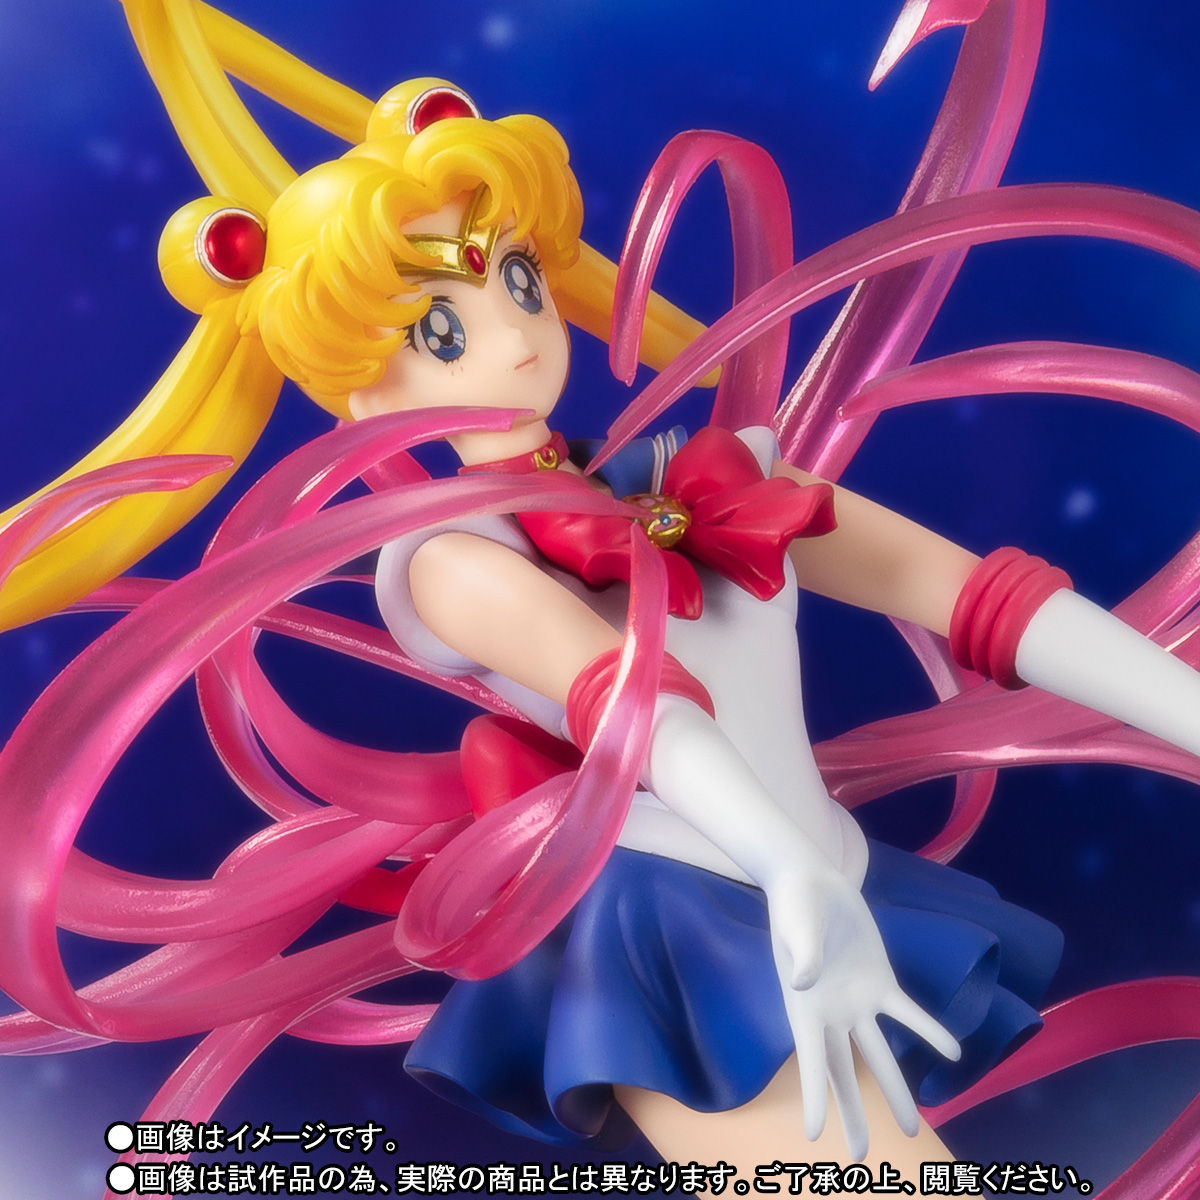 Figuarts Zero chouette『セーラームーン -Moon Crystal Power, Make Up-』完成品フィギュア